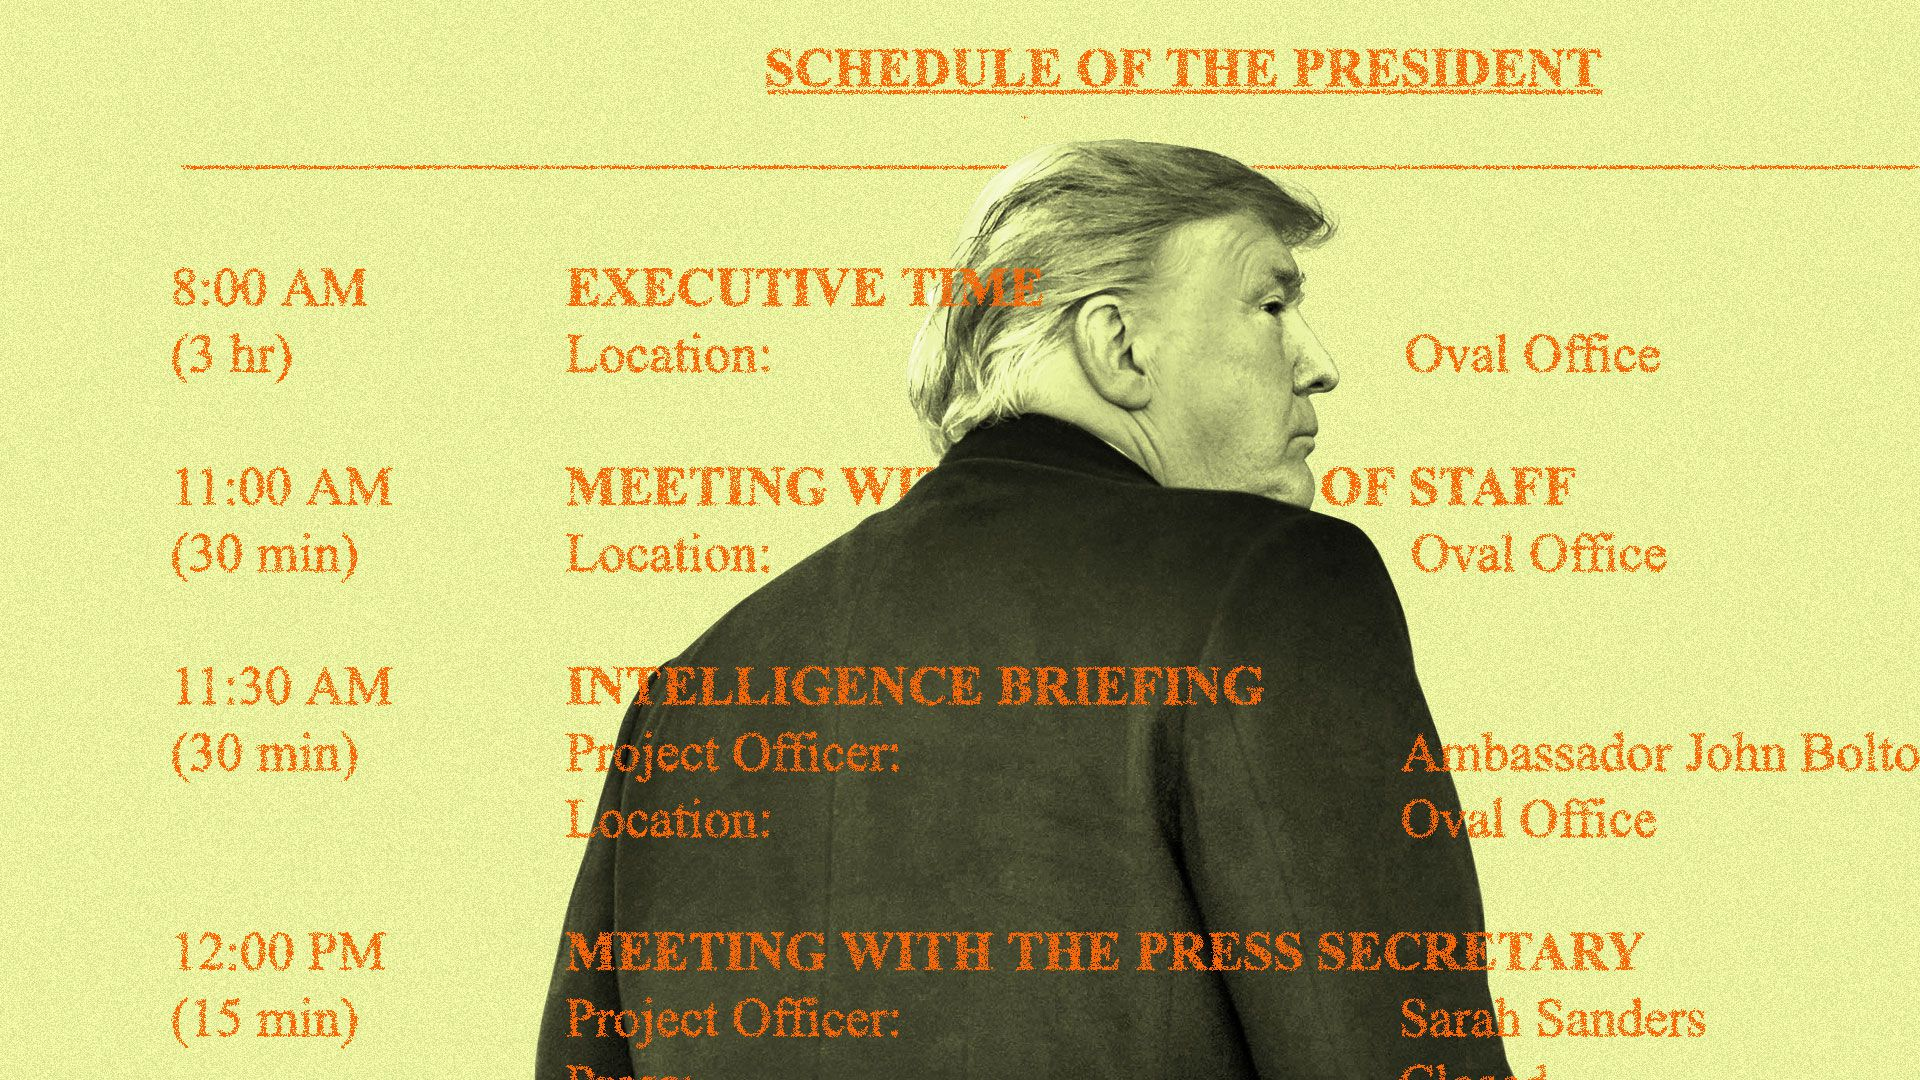 Photo of Trump, back to viewer, with a sparse schedule overlaying the image